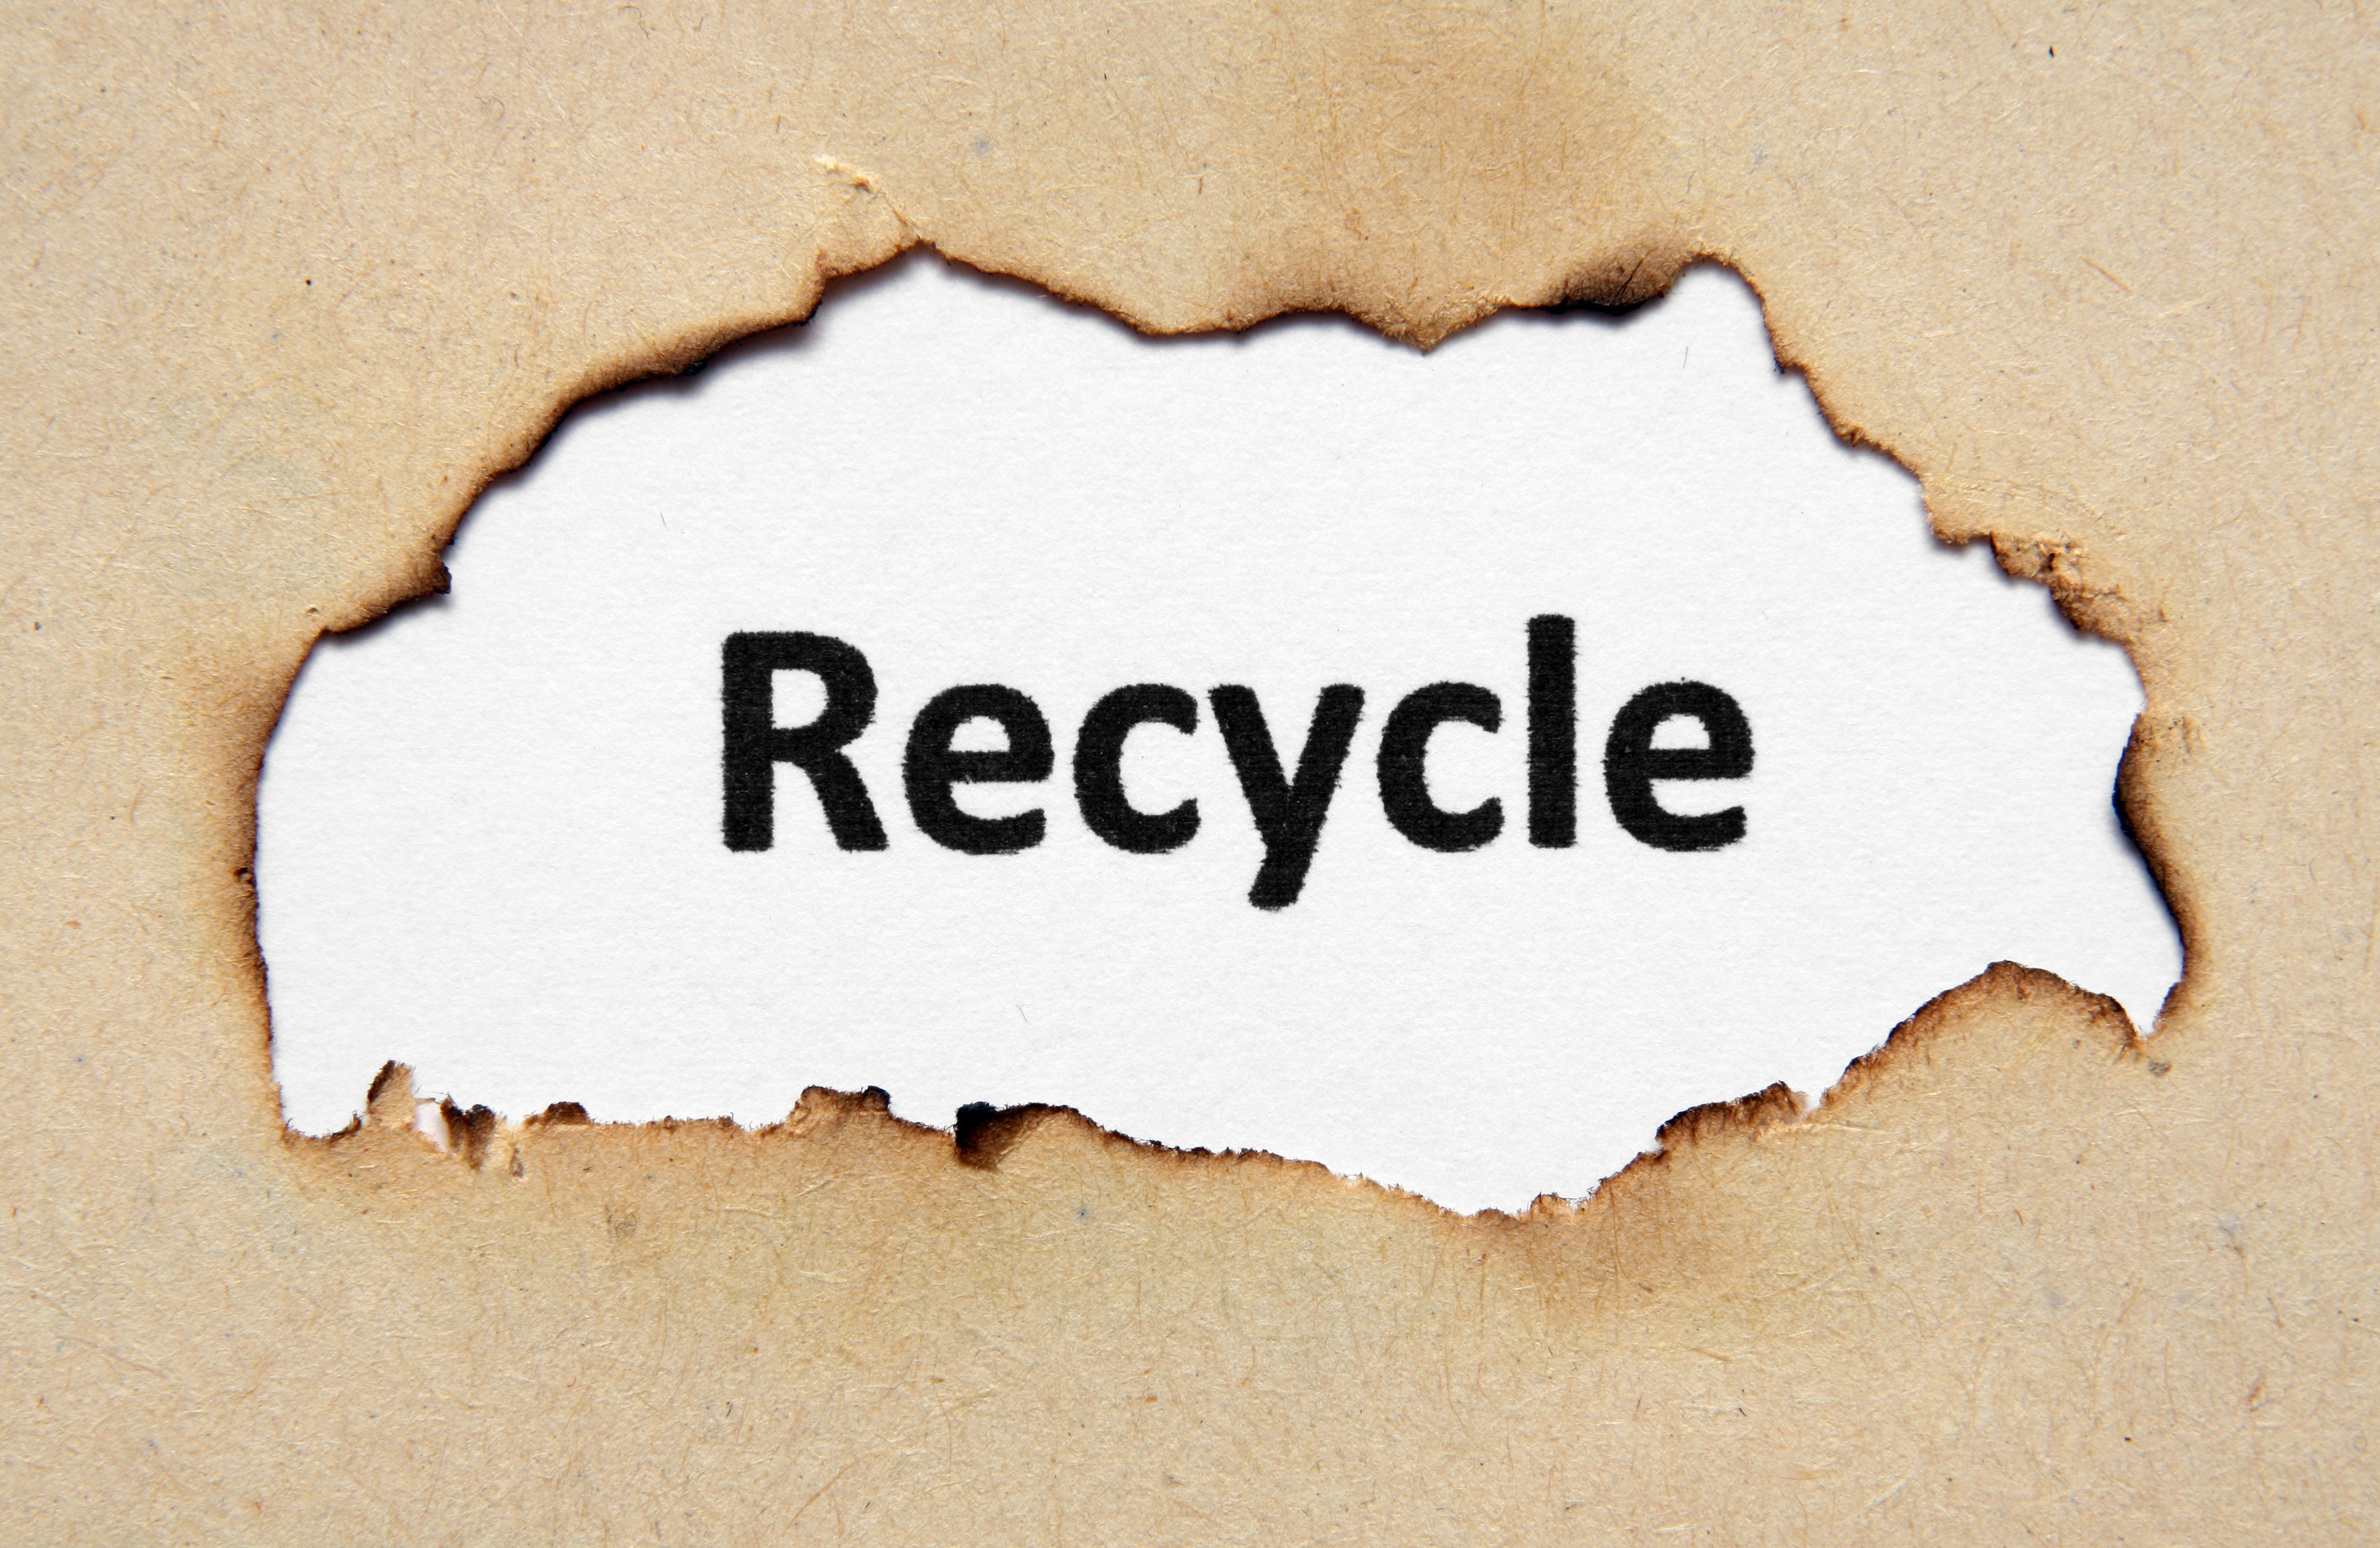 recycle-text-on-paper-hole_zyxDUwPd